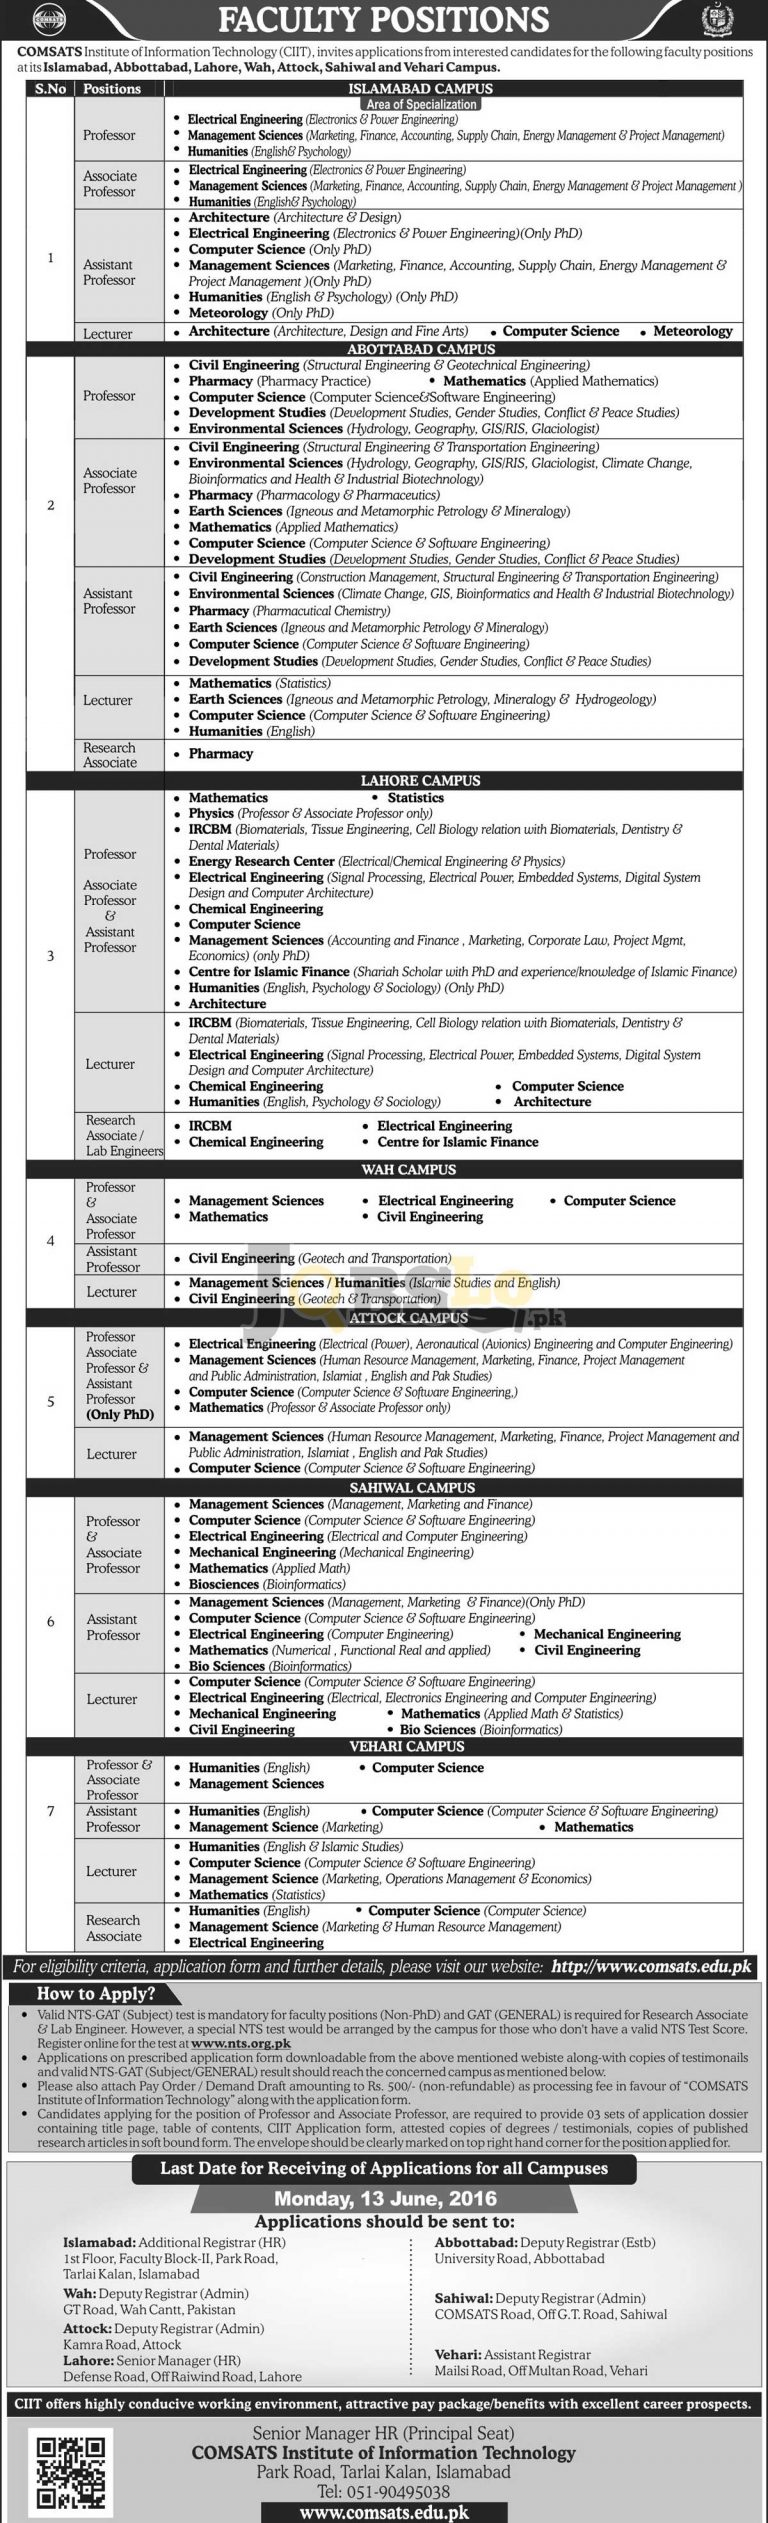 COMSATS Institute of Information Technology Jobs 2016 NTS Online Registration